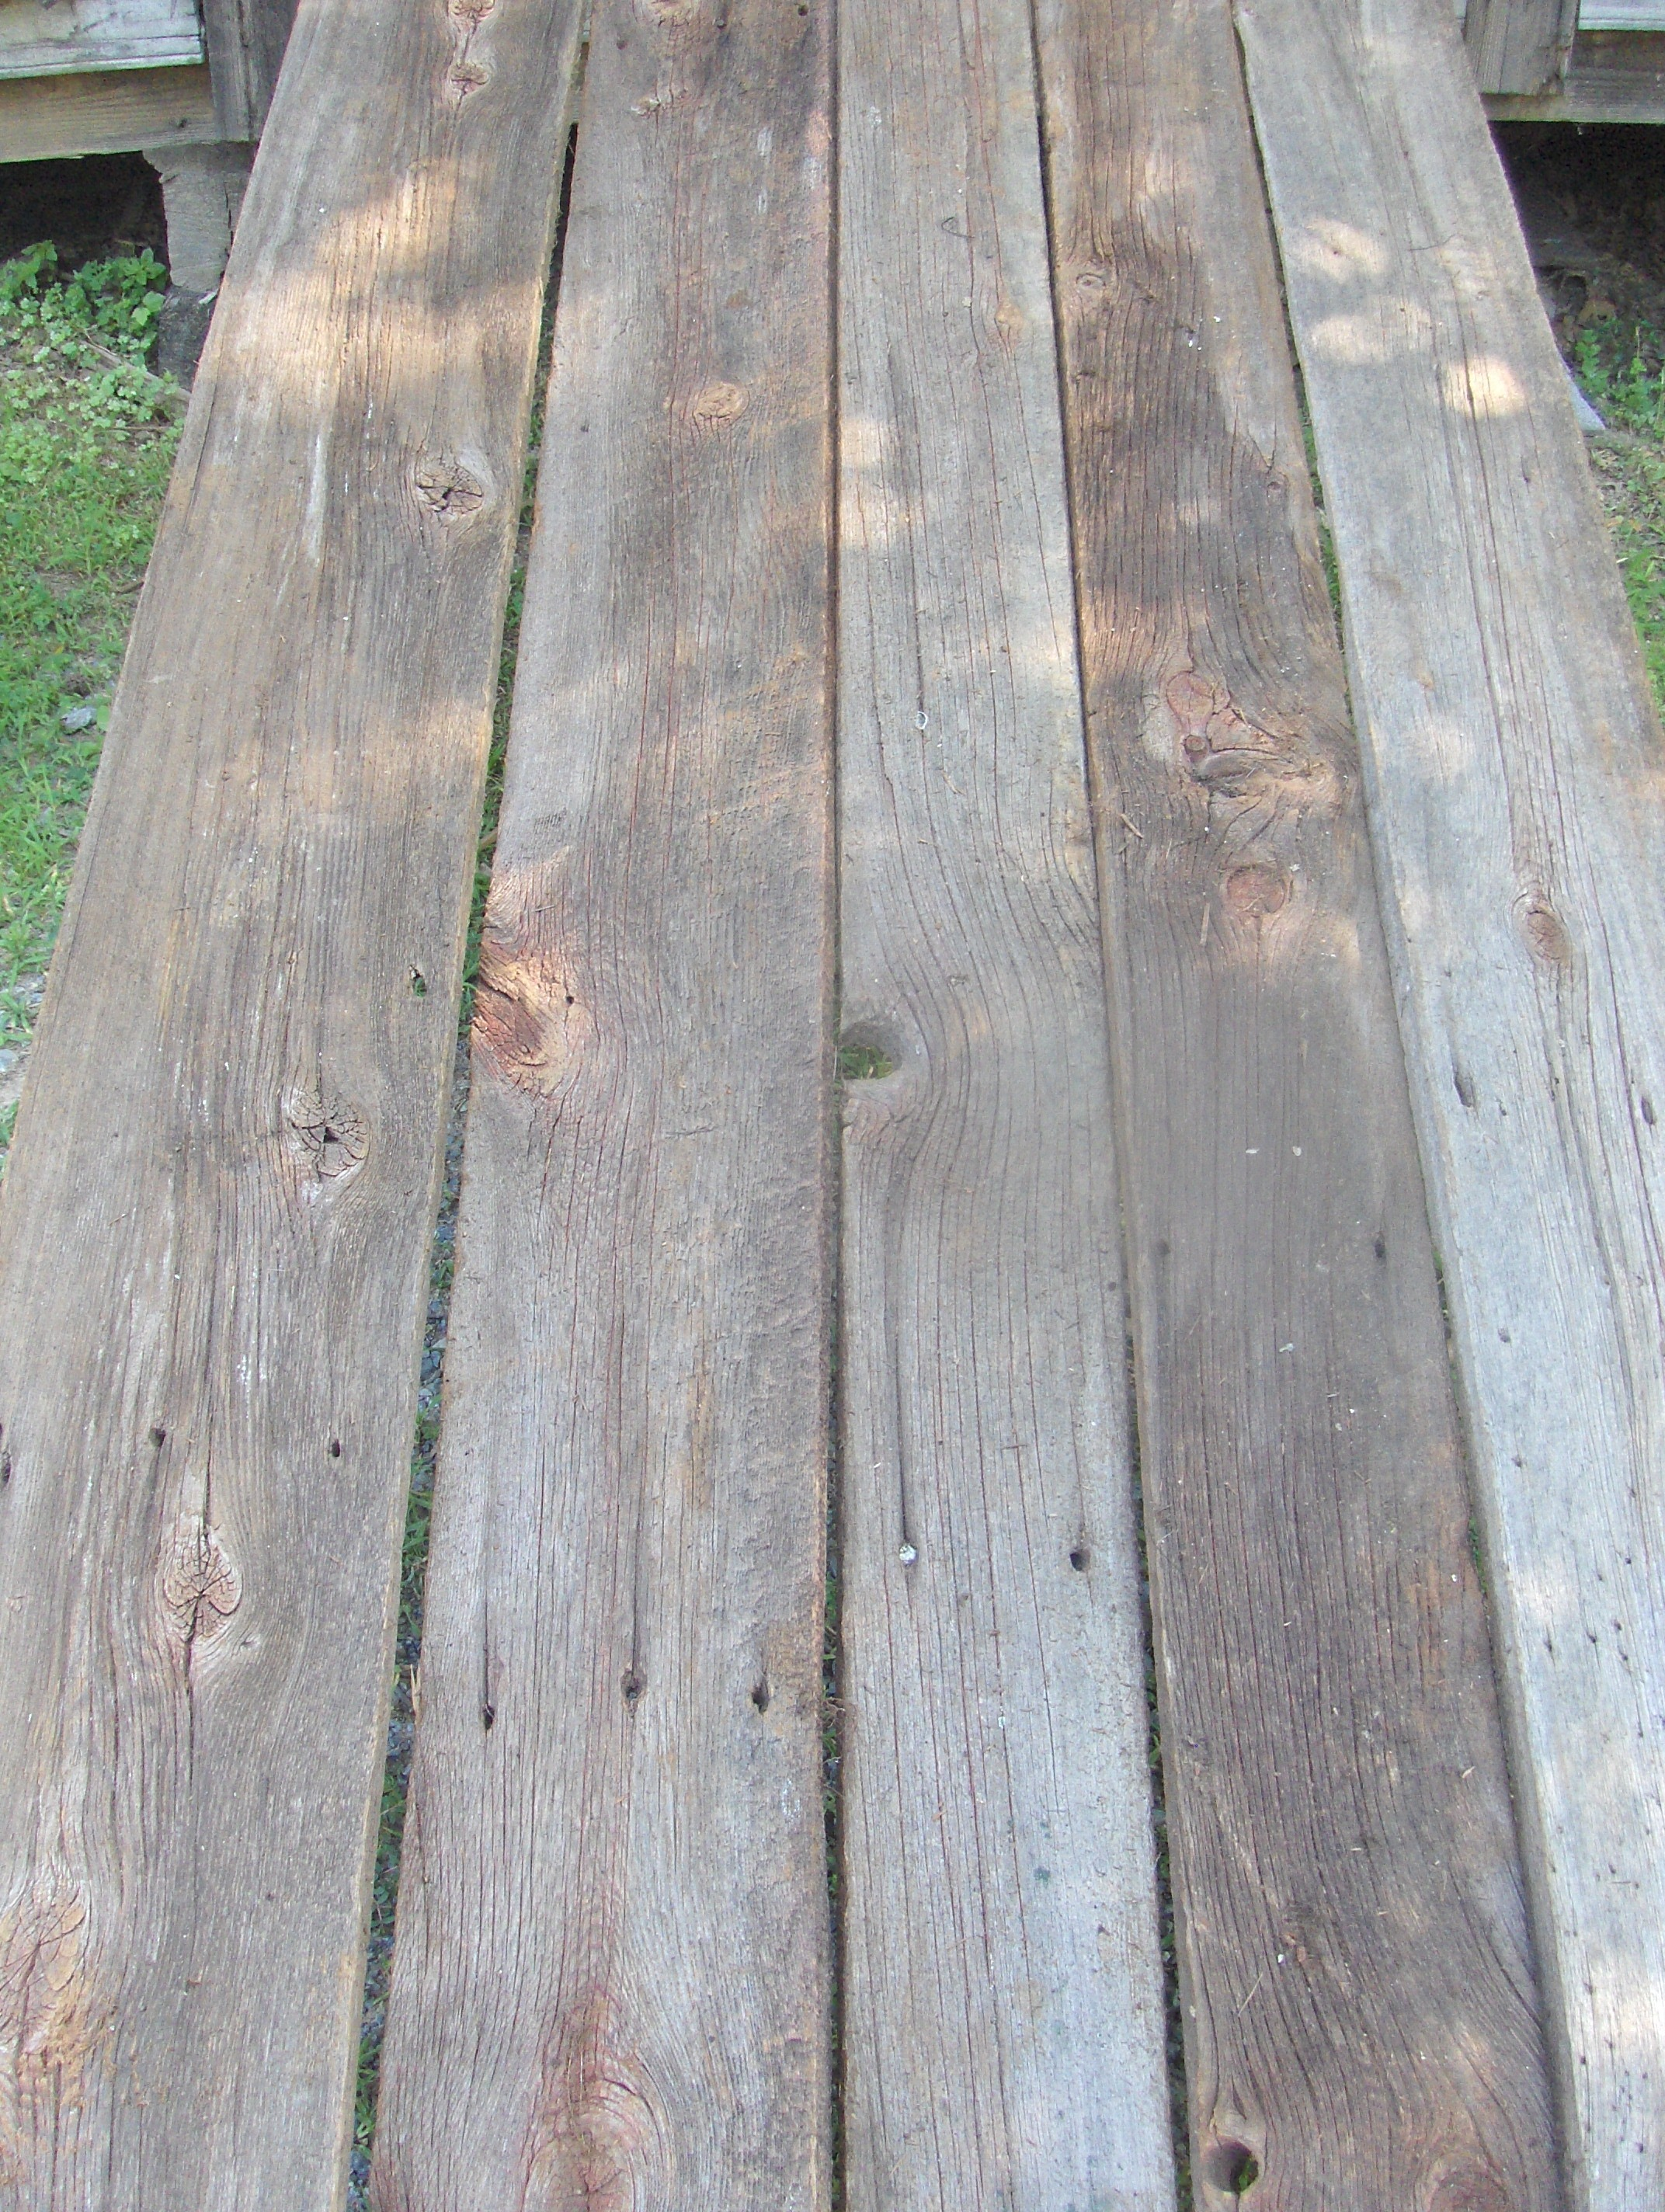 laminate grain en old texture off design structure washed plank flooring lumber hardwood barn structures up close material free graphic boards wooden photo stain weathered background wood textures collection barns nature pattern floor images surface